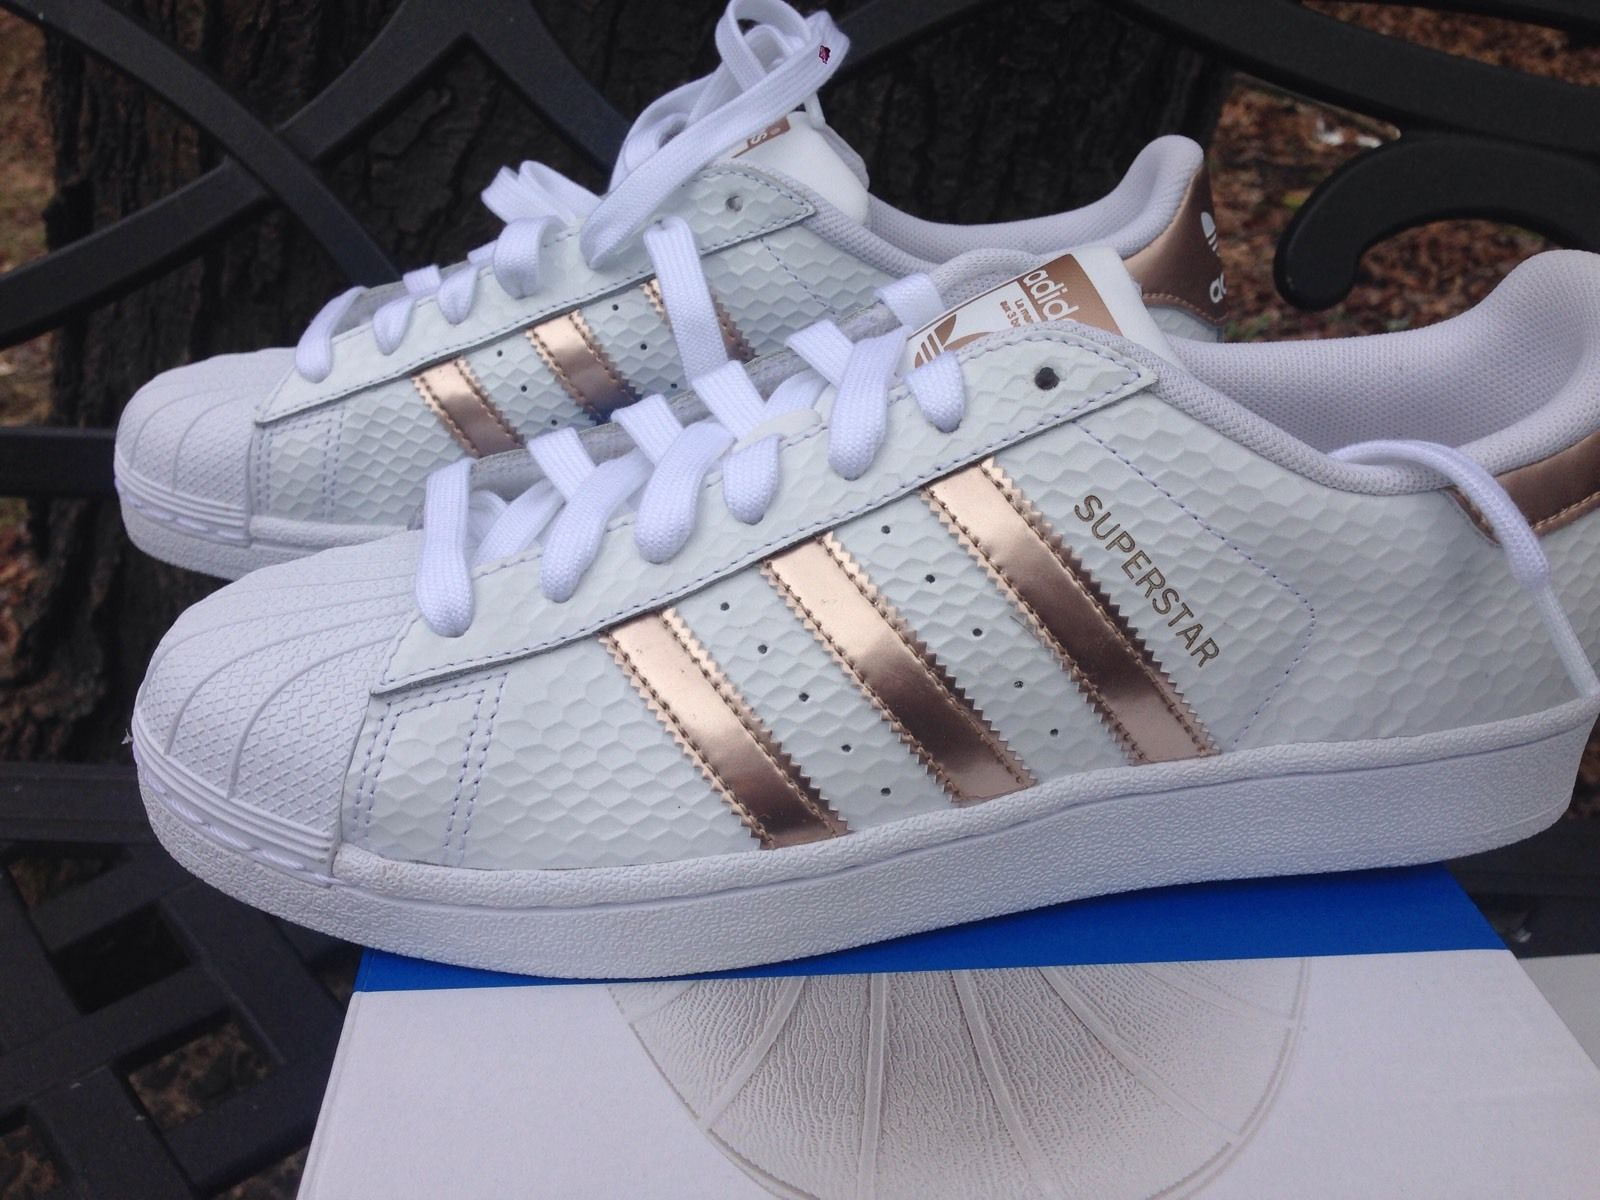 finest selection e9c30 cd298 shoes, adidas superstars, white sneakers, low top sneakers, gold -  Wheretoget